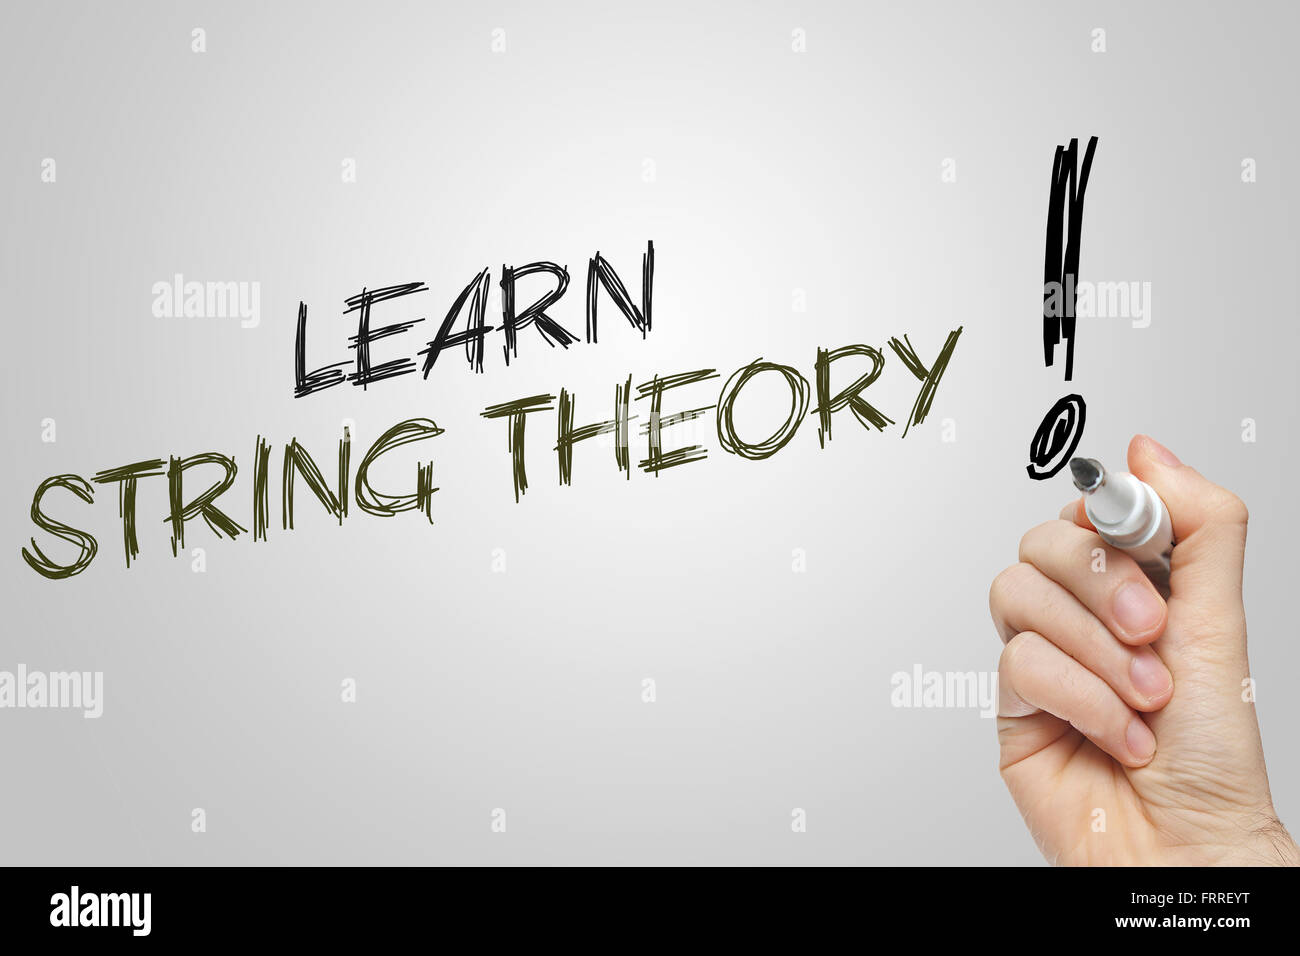 Hand writing learn string theory on grey background - Stock Image